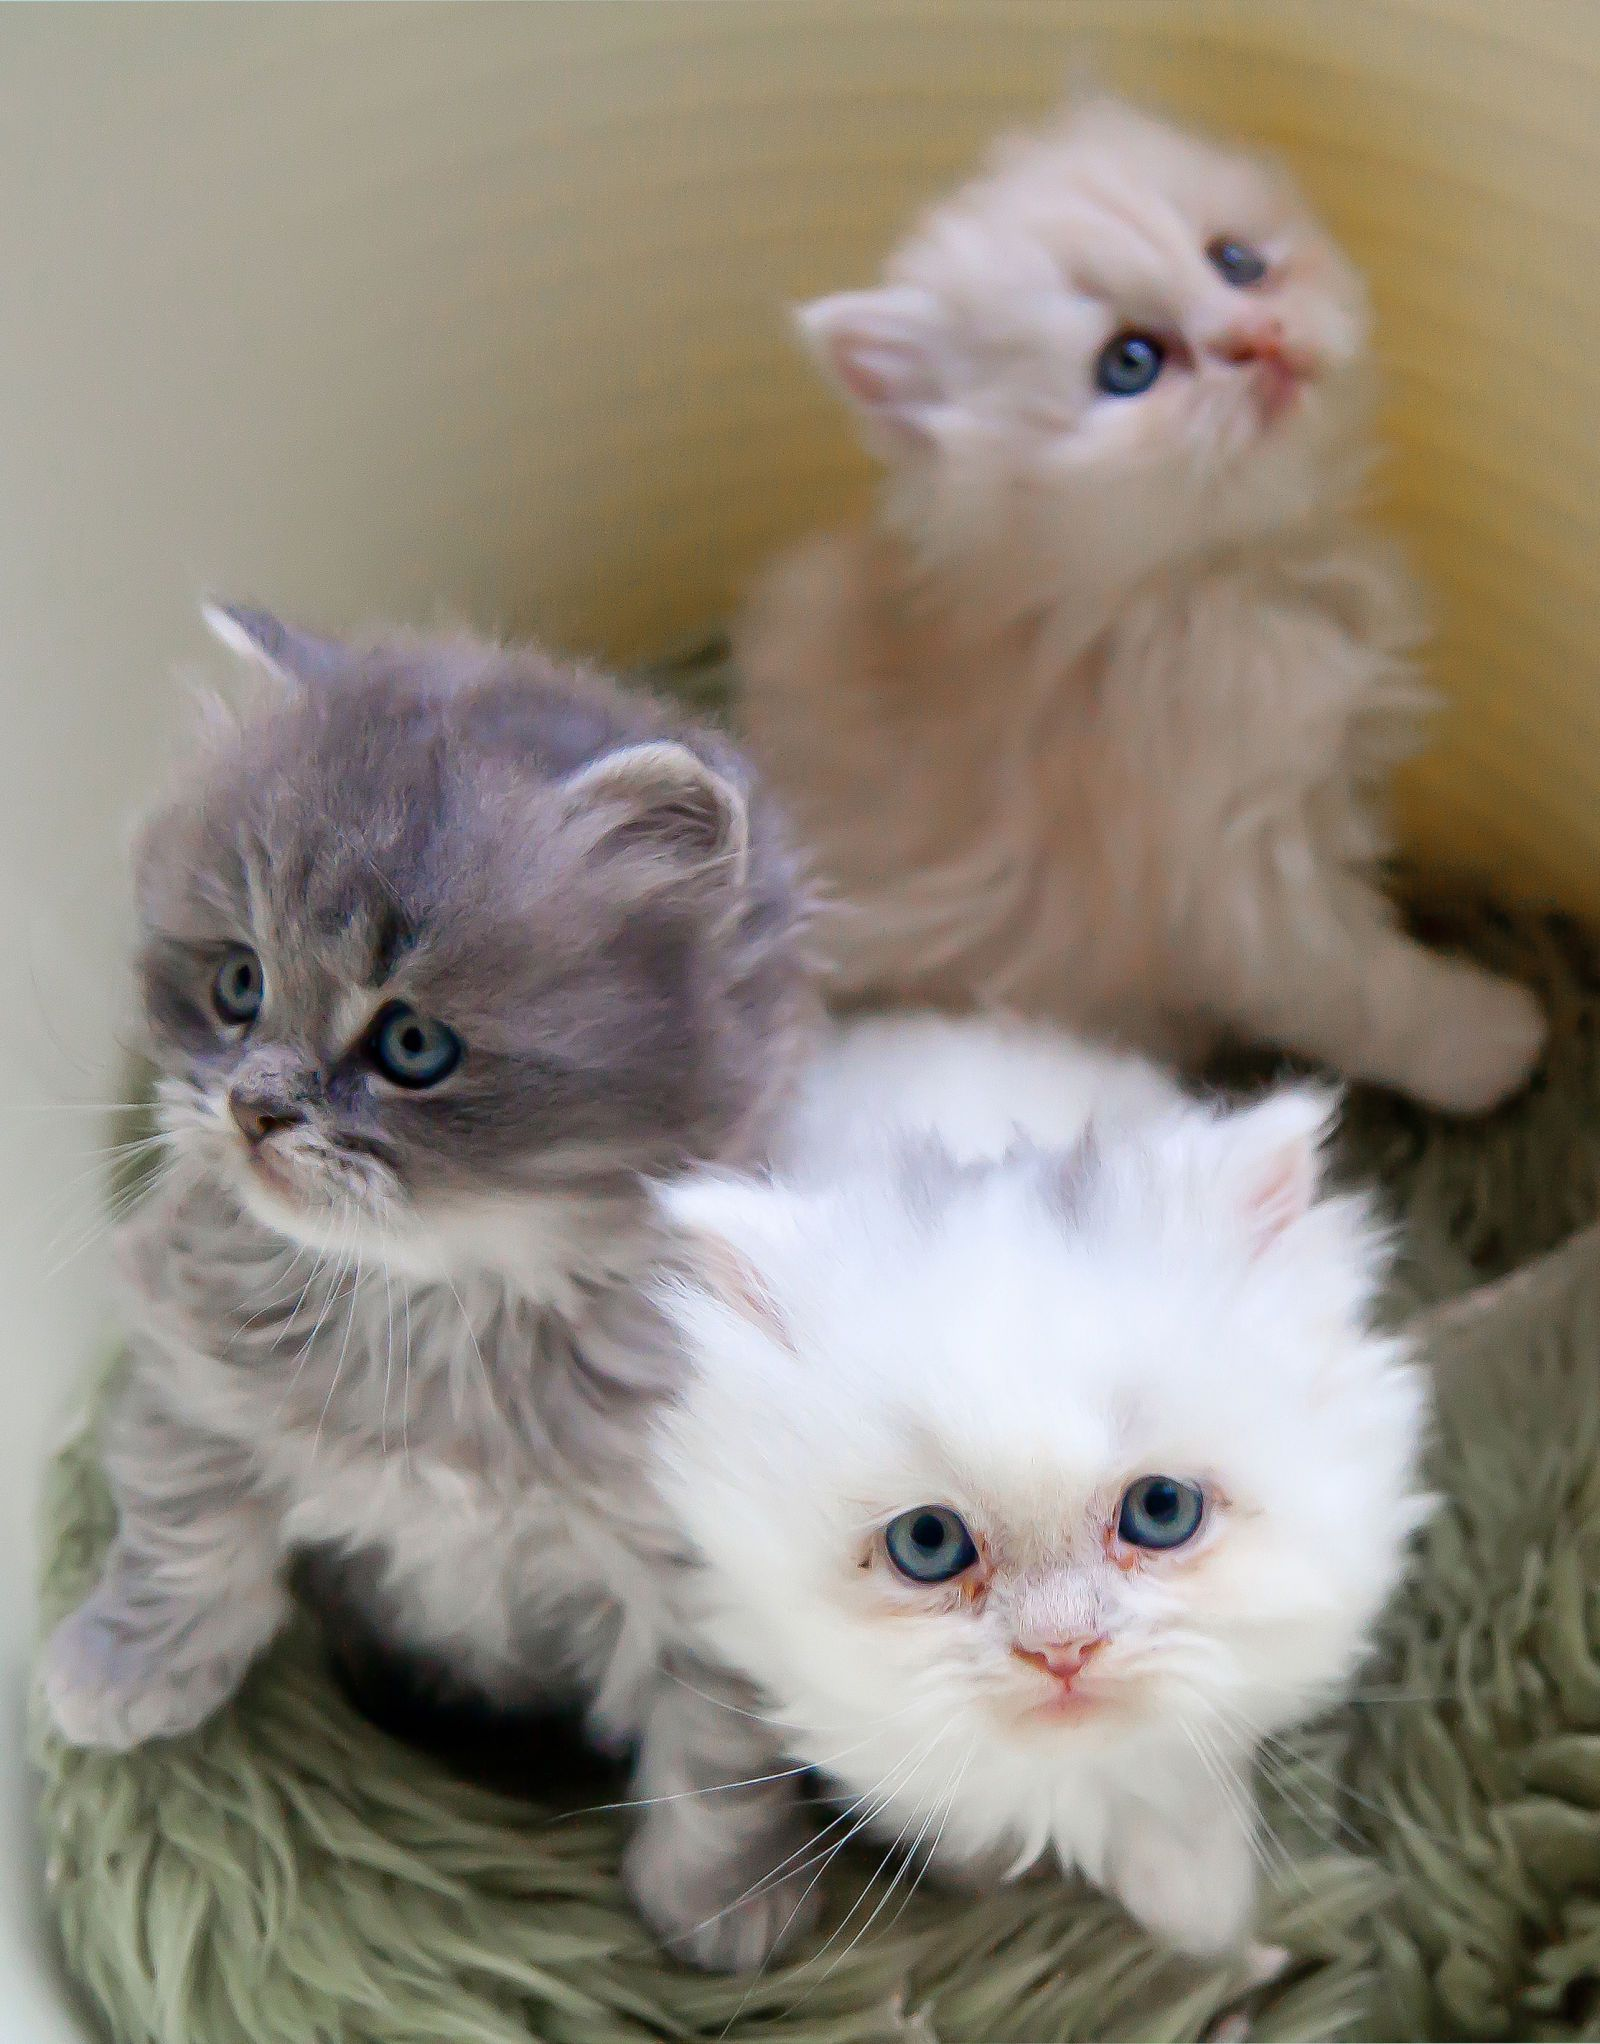 Out of these three adorable kittens we can't decide which